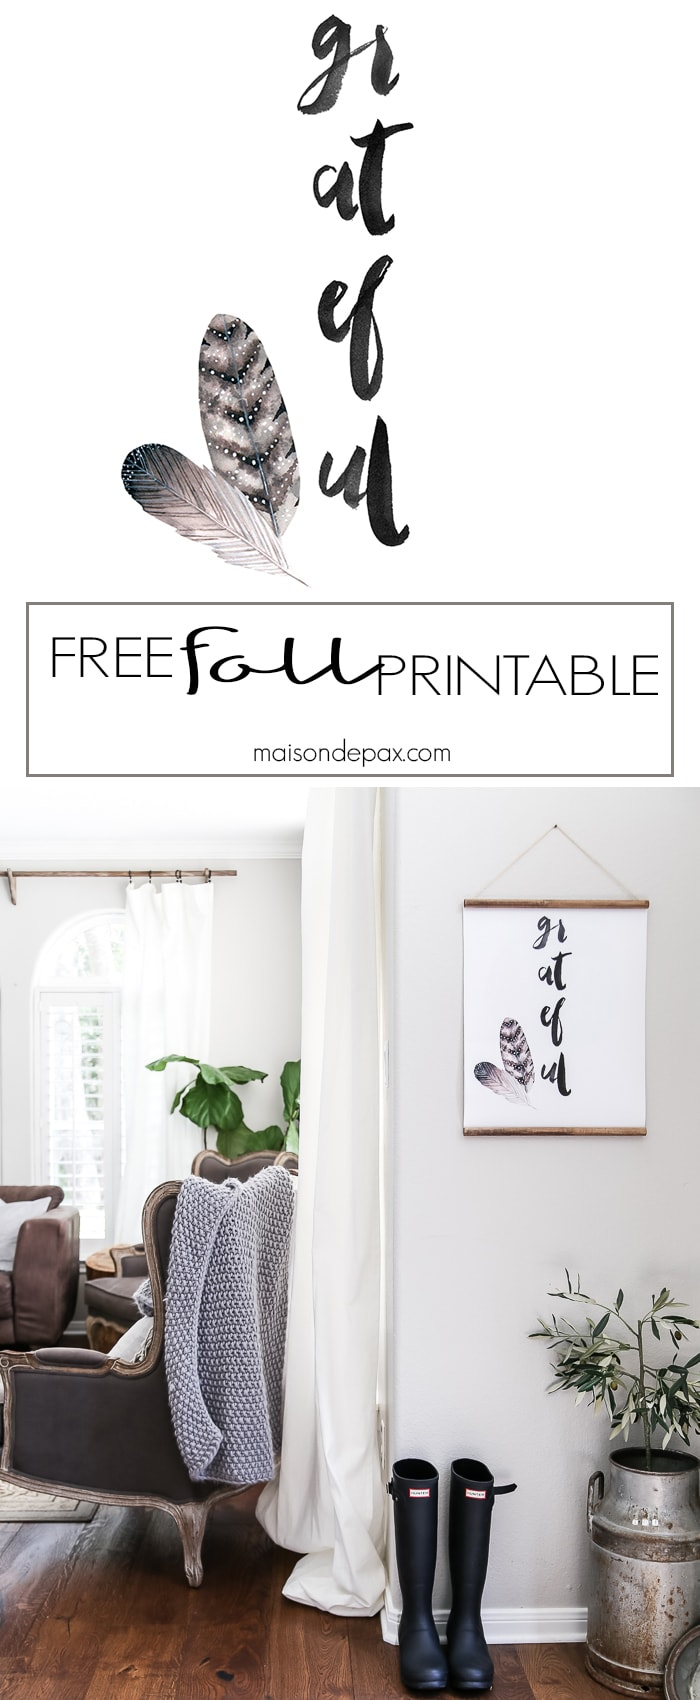 Download this free fall printable! Watercolor wall art: grateful with feathers makes beautiful, neutral fall decor.